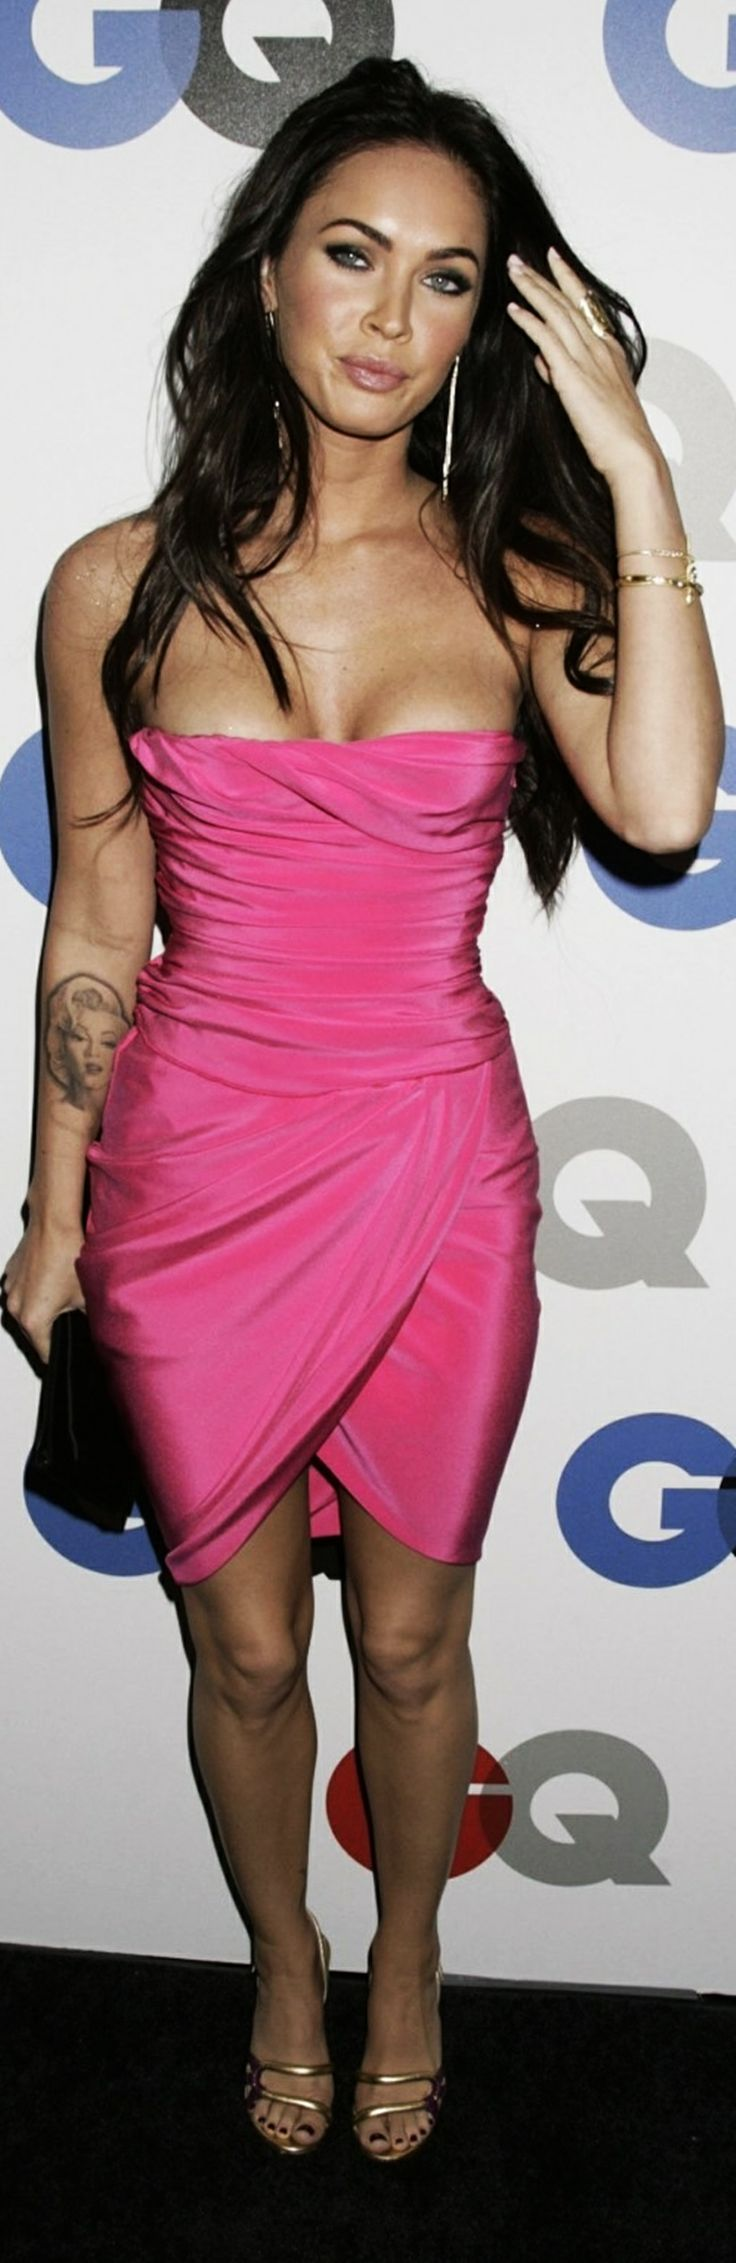 276 best Megan Fox images on Pinterest   Foxes, Beautiful women and ...